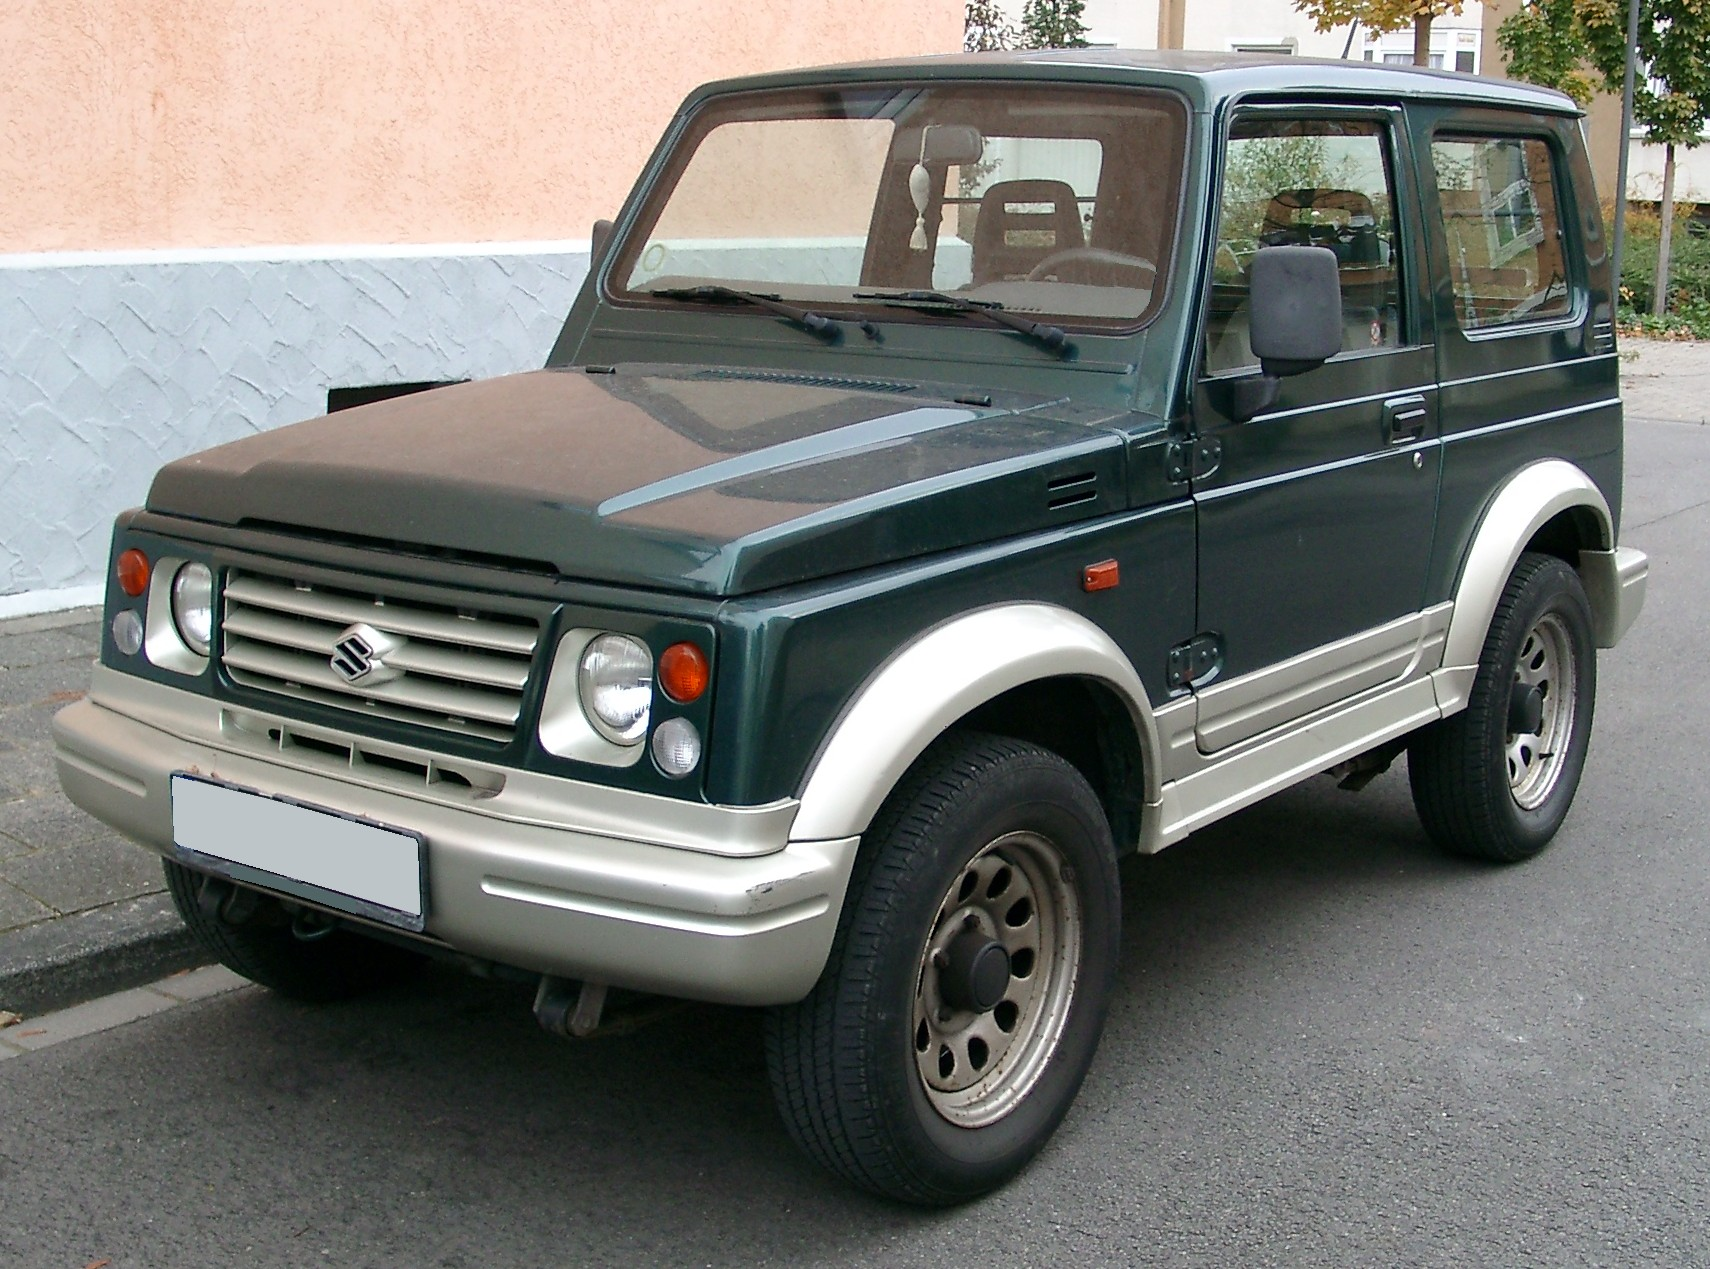 Suzuki Samurai 2000 photo - 3